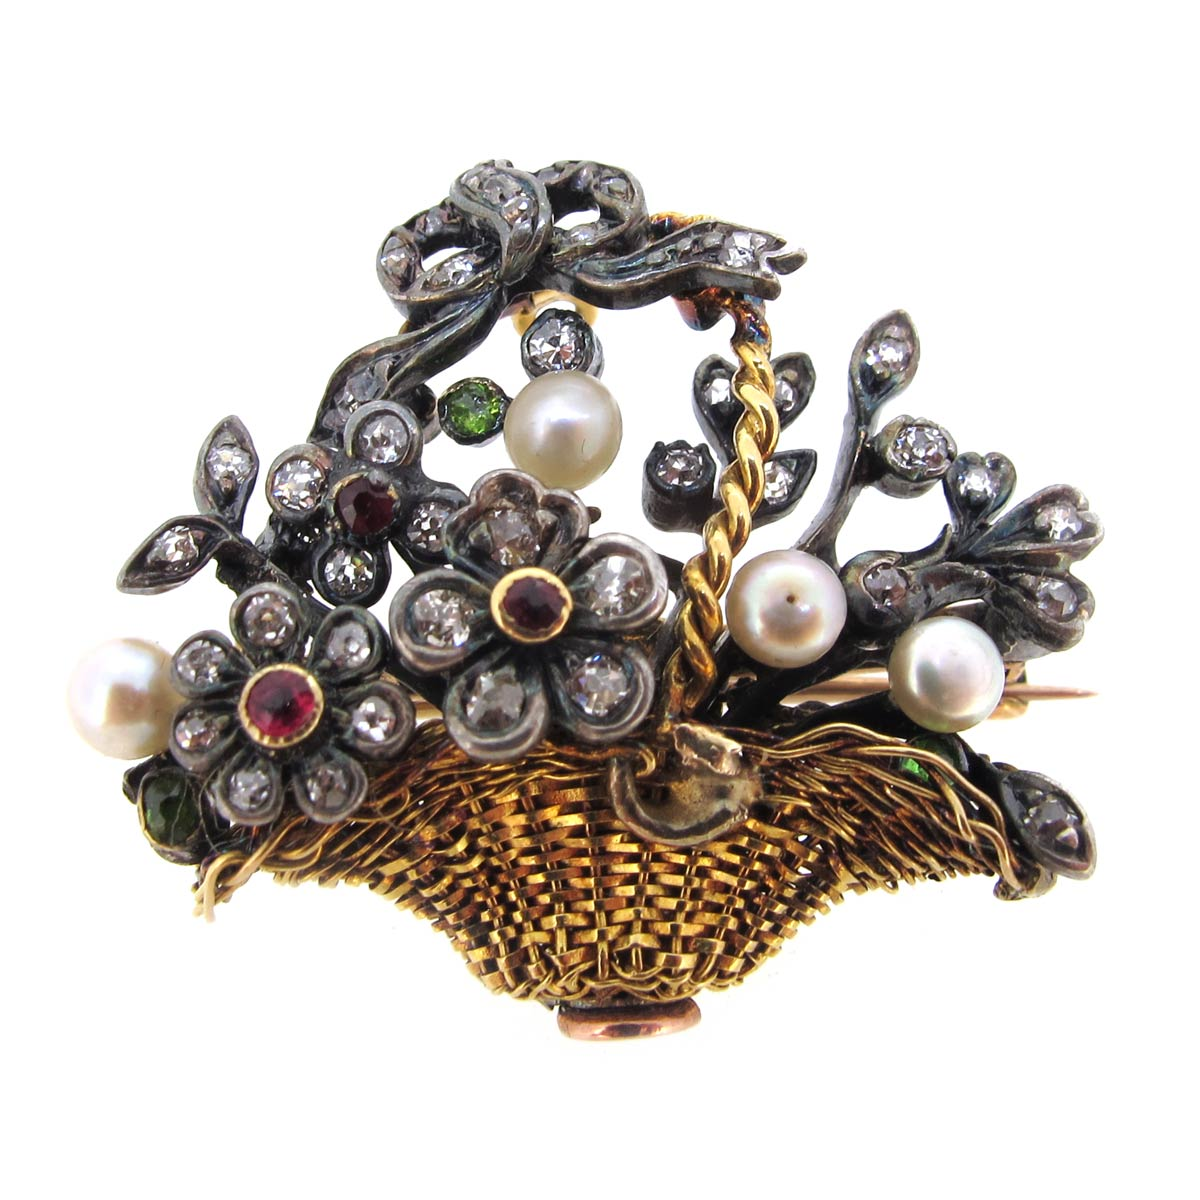 Antique Diamond & Pearl Basket Brooch